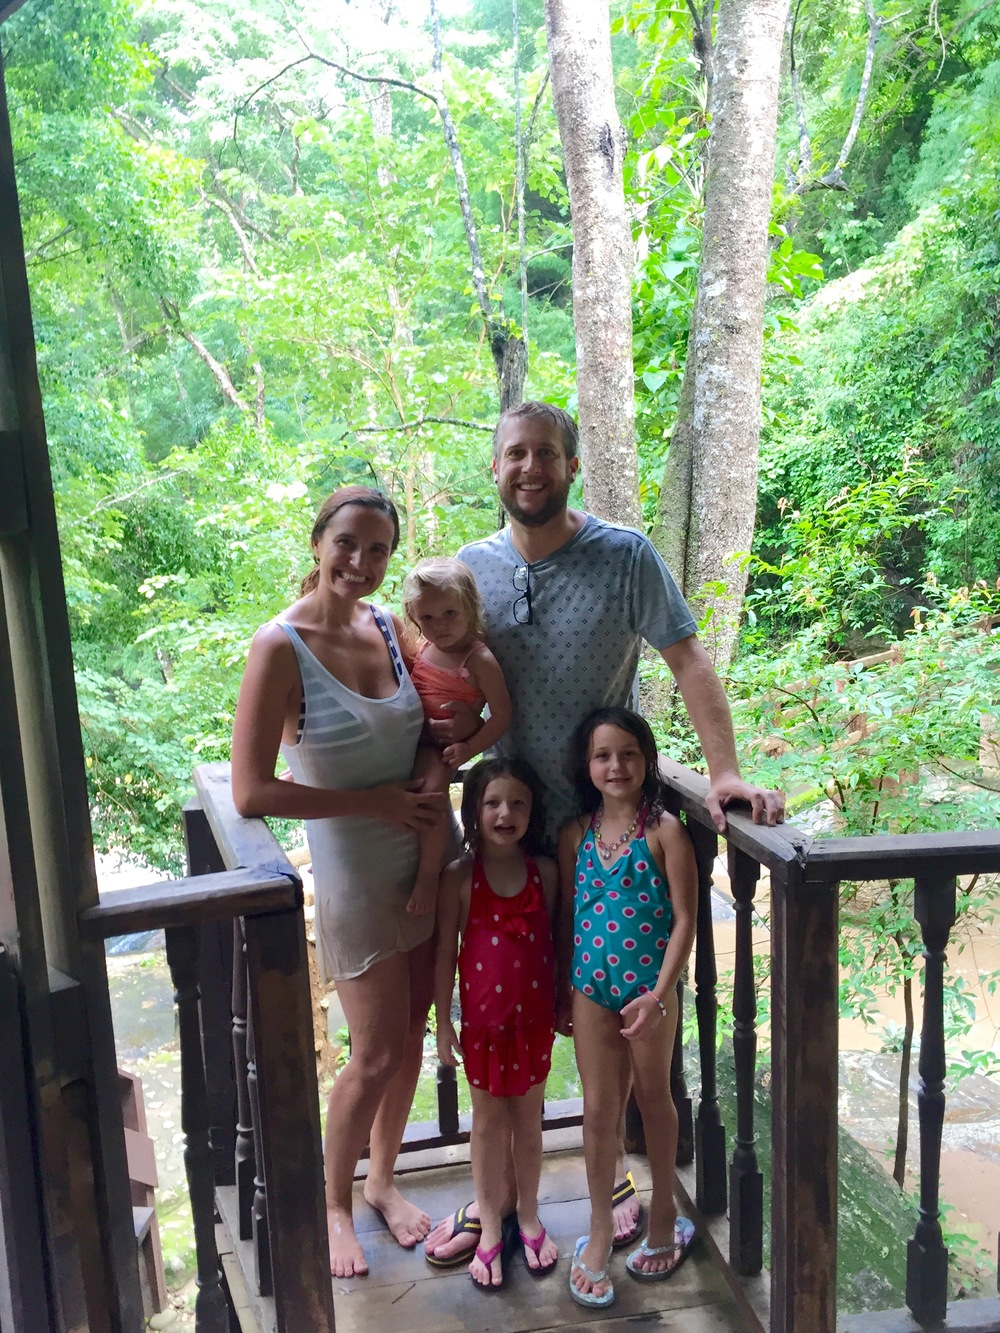 On an overlook at Level 5 of Mae Sa Waterfall Park